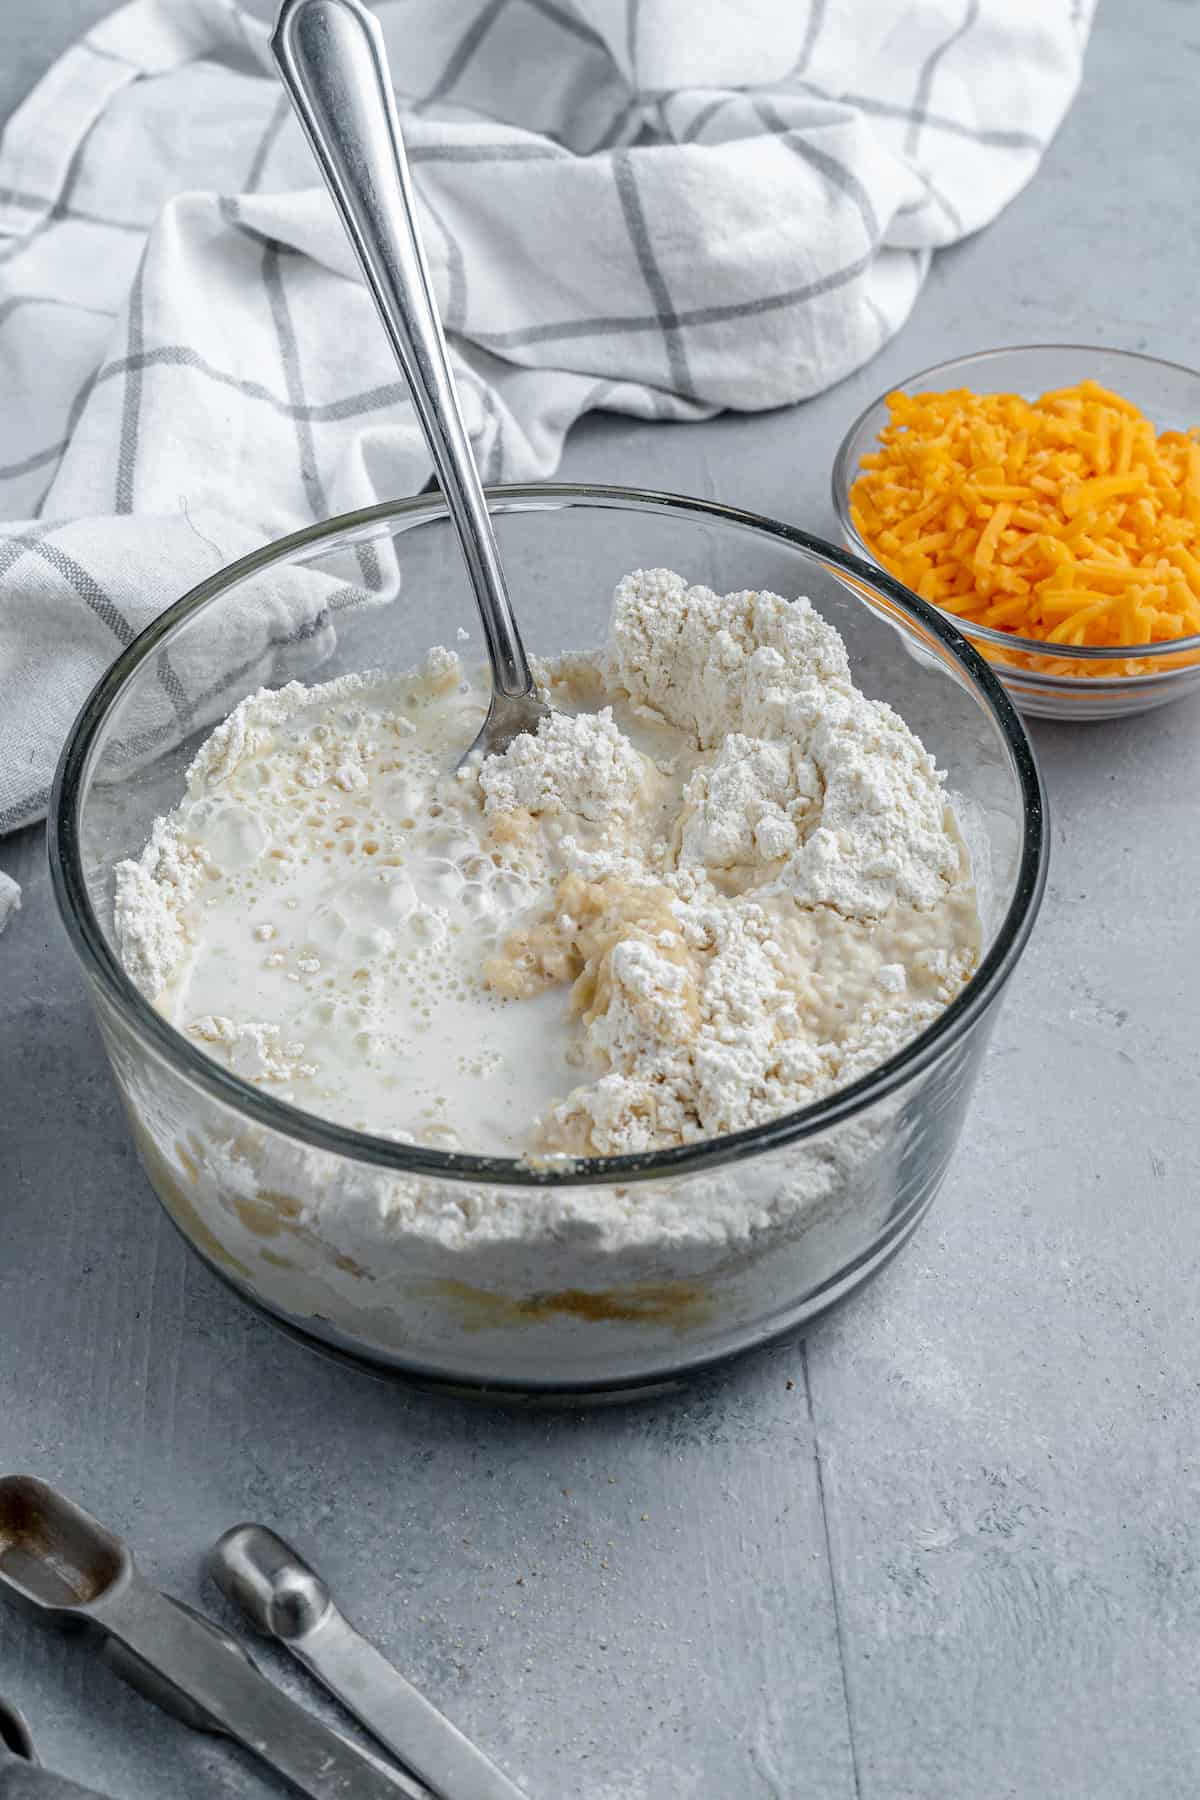 Bisquick Mix, Milk and Butter in a Bowl Beside a Dish of Shredded Cheddar